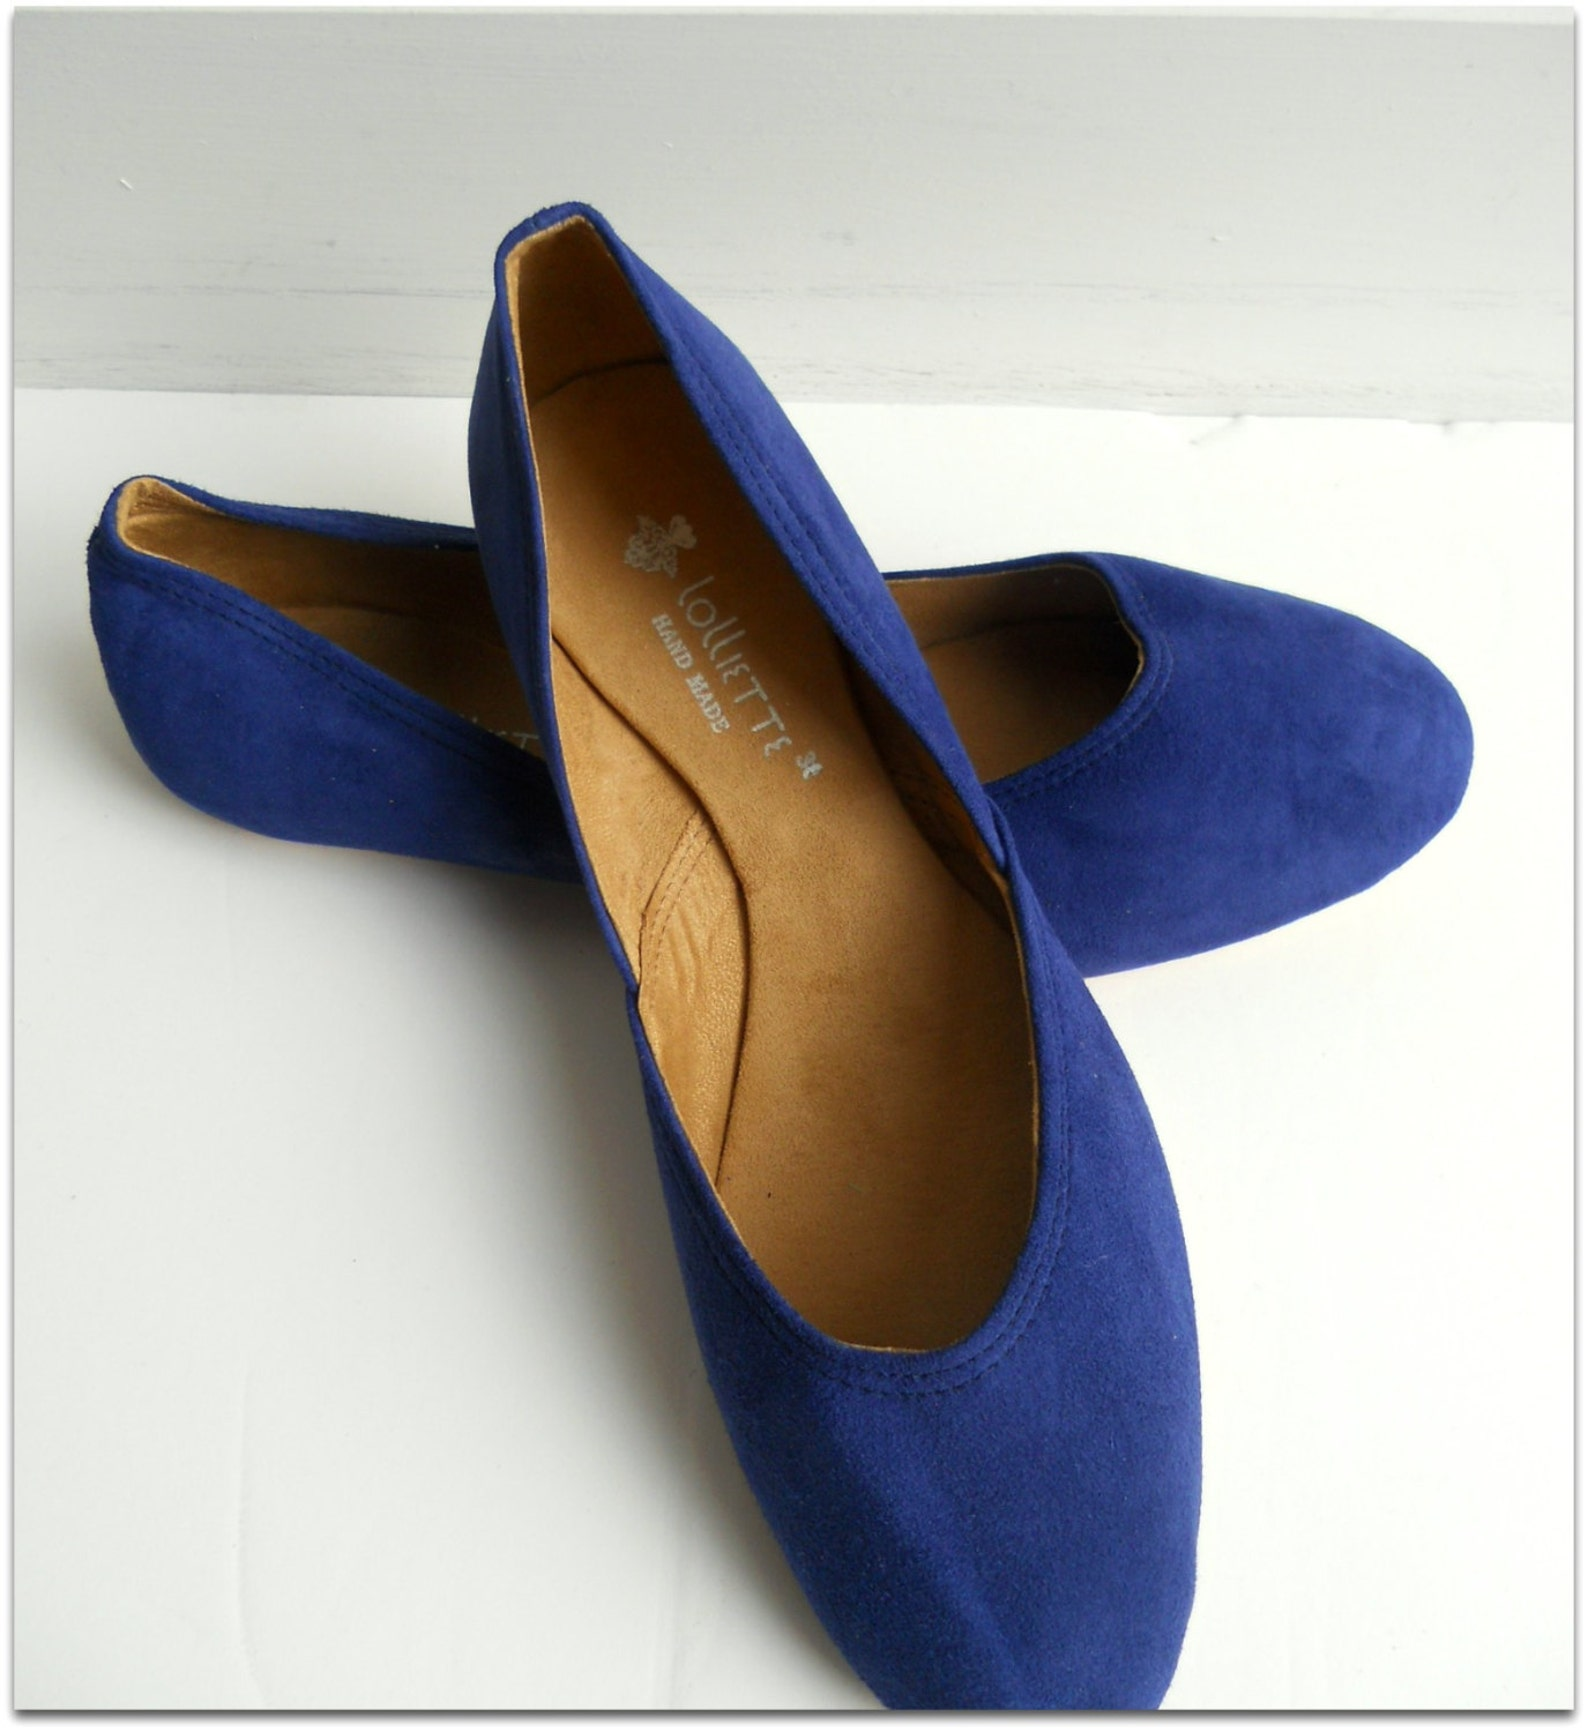 maya. cobalt blue suede/ ballet flats/ women's suede shoes/ wedding flats. available in different sizes see below